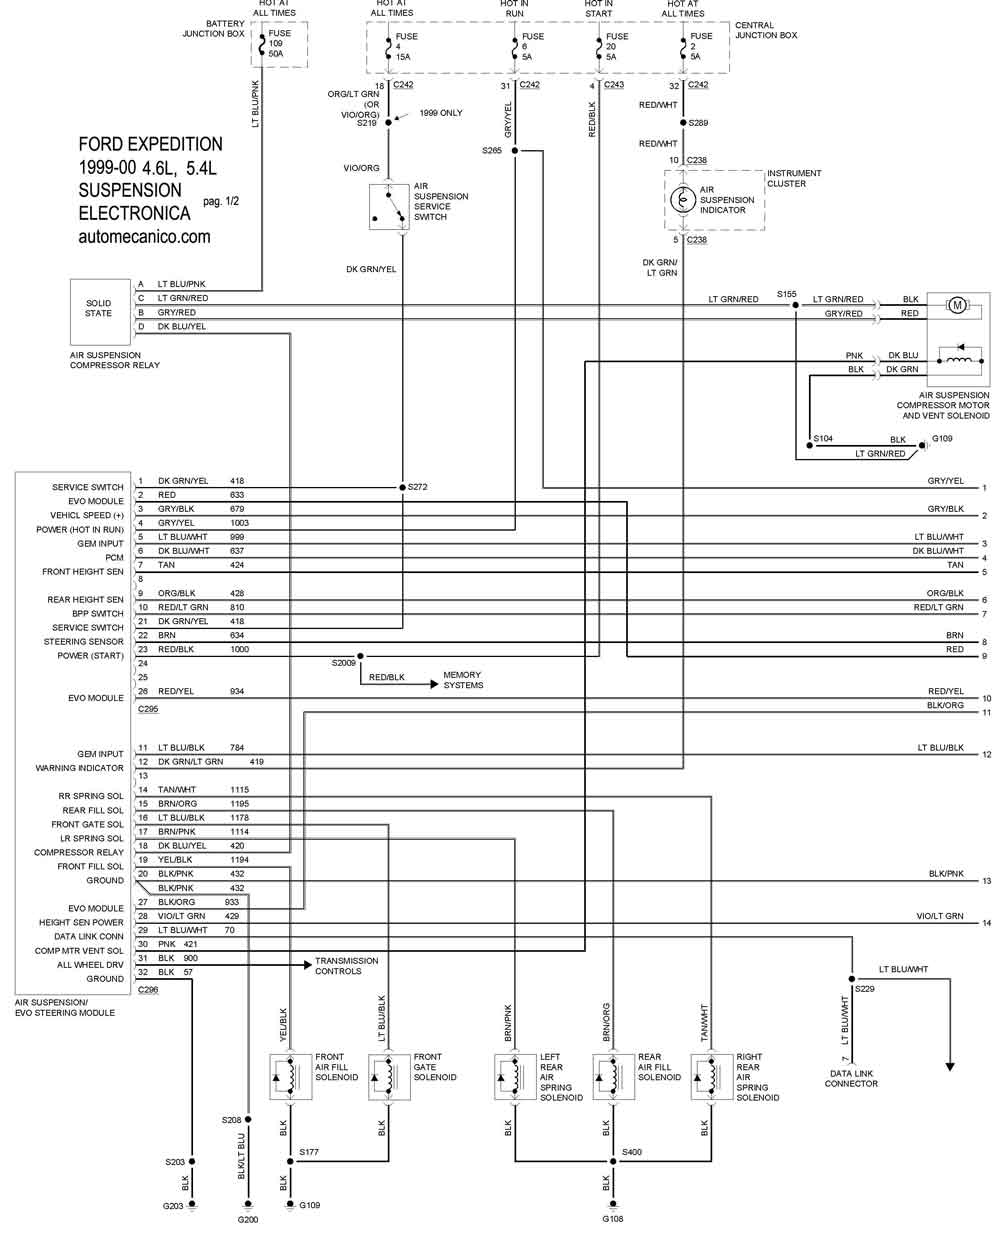 Manual De Fusibles Ford Expedition 2000 Fuse Box Diagram Moreover 060sg Need Schematic Ranger Xlt Where Flasher F150 2005 A 12353 As Well 2007